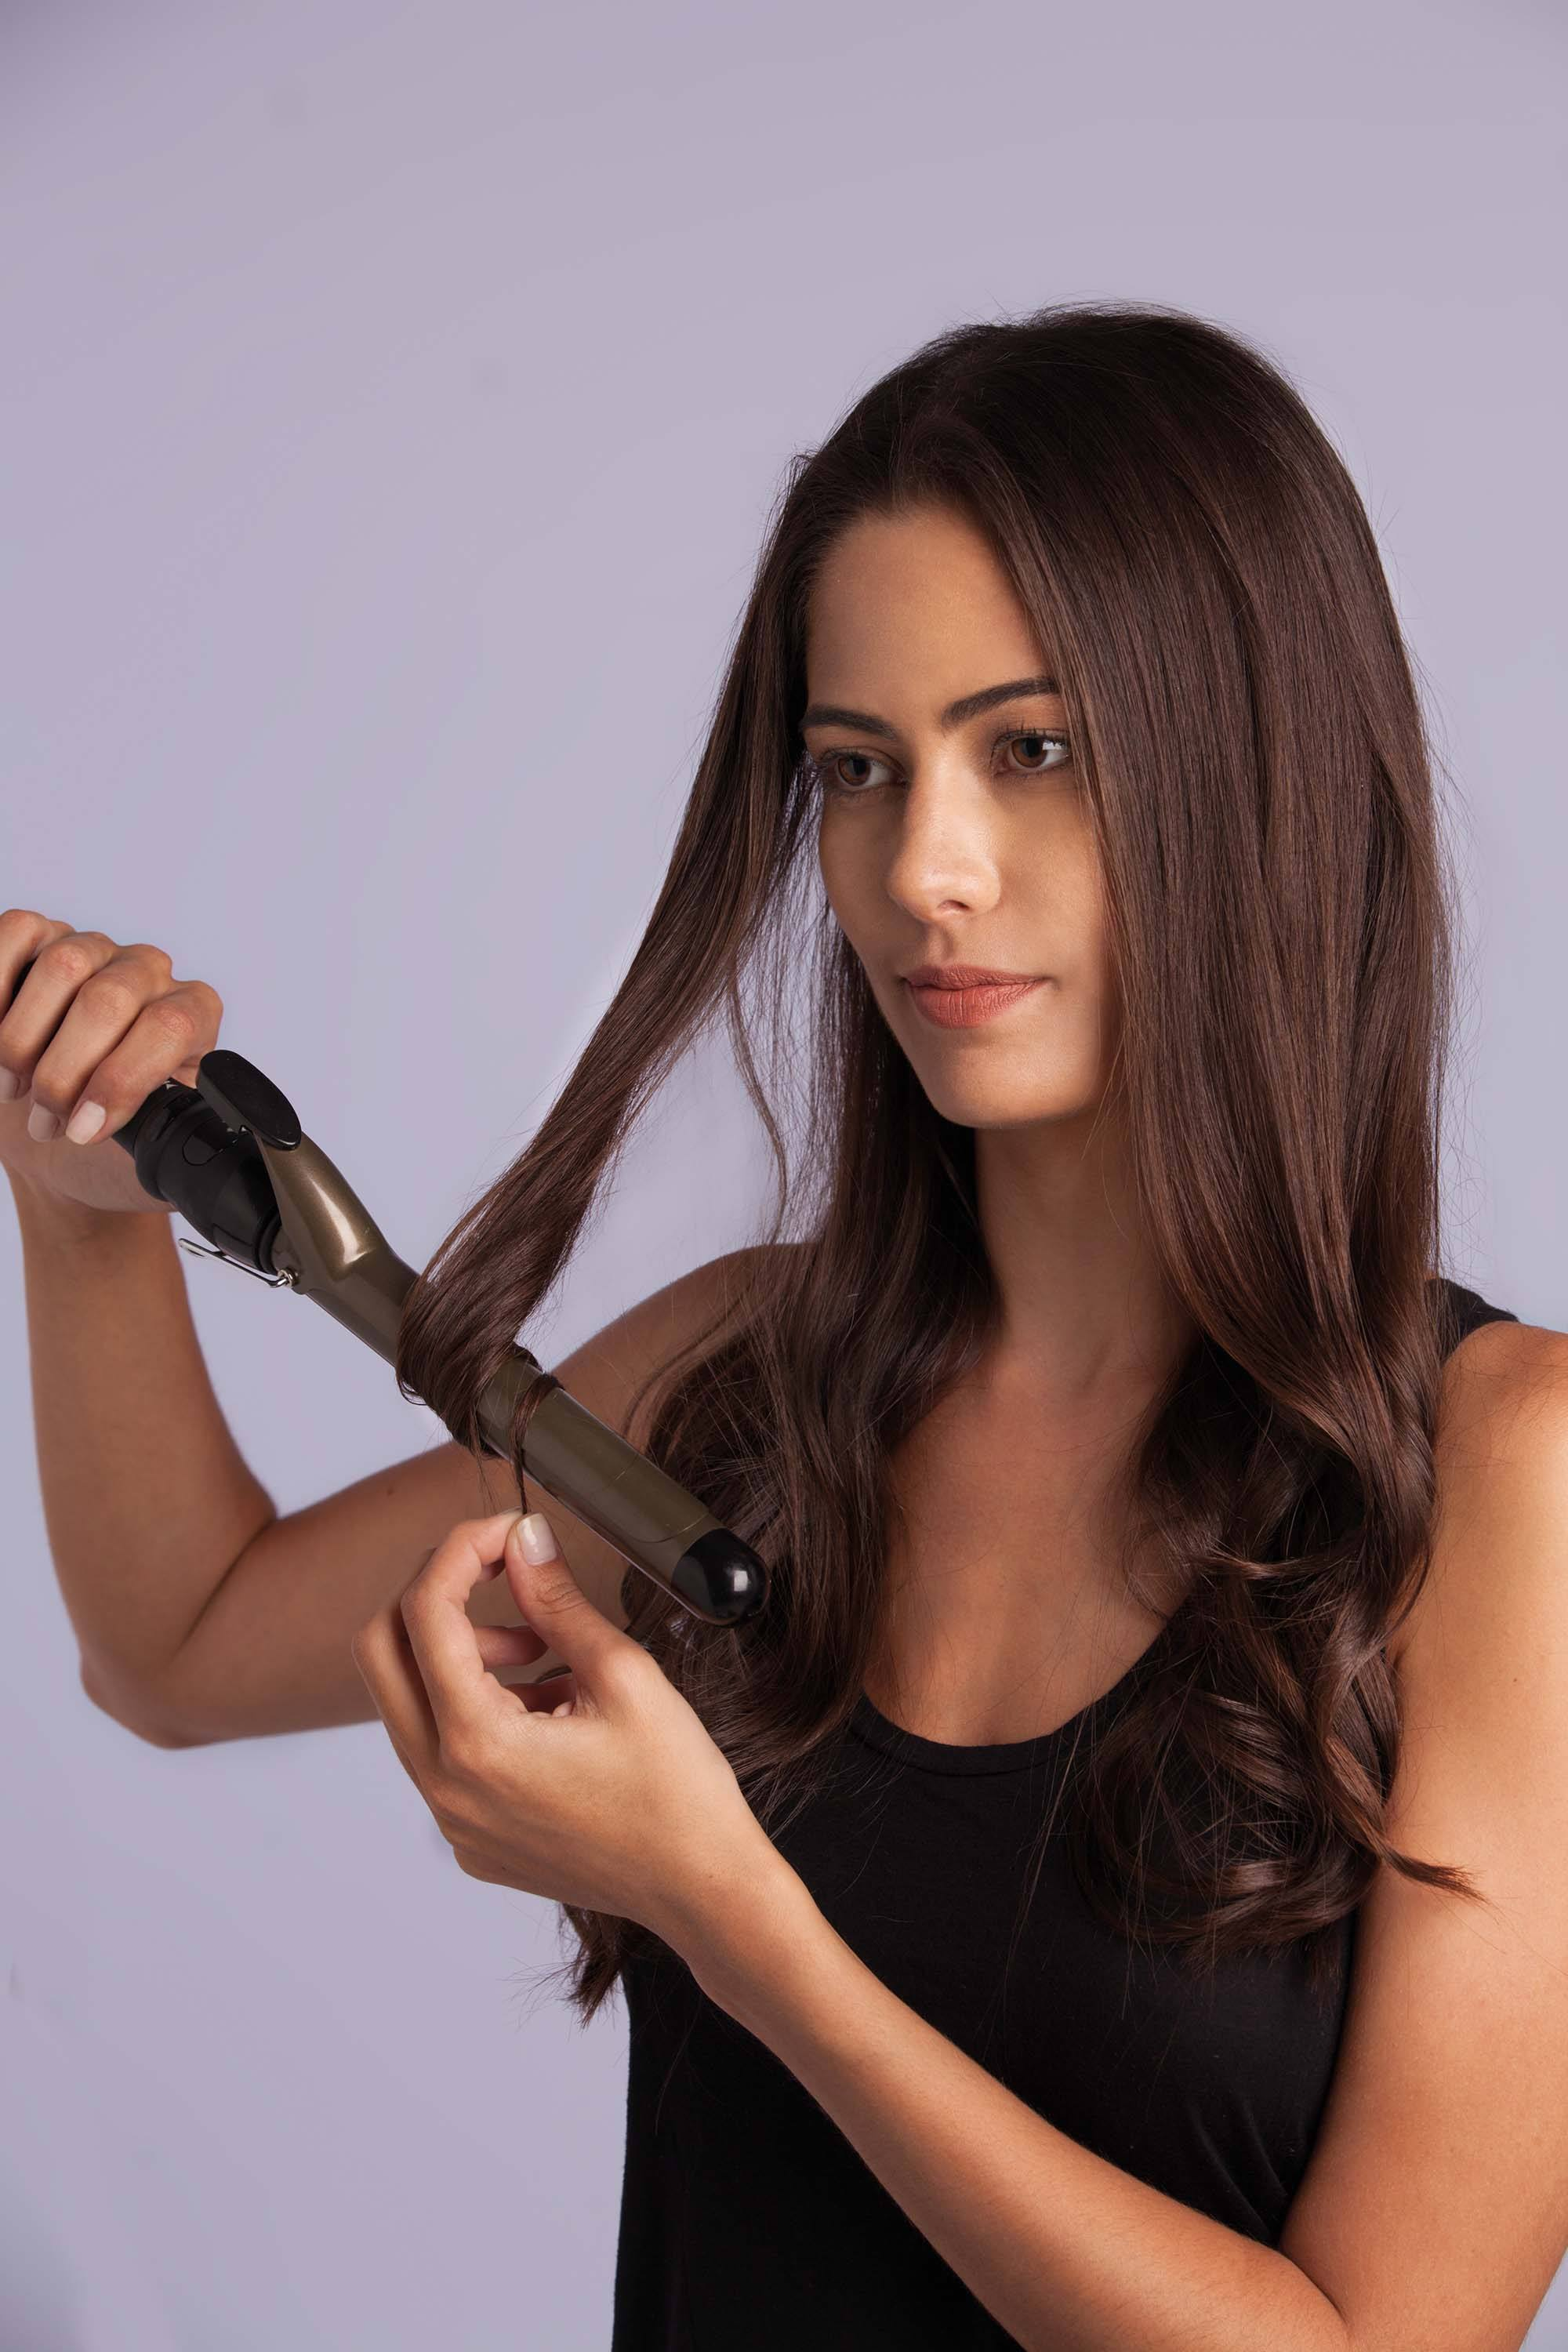 Best Curling Iron For All Your Hair Issues